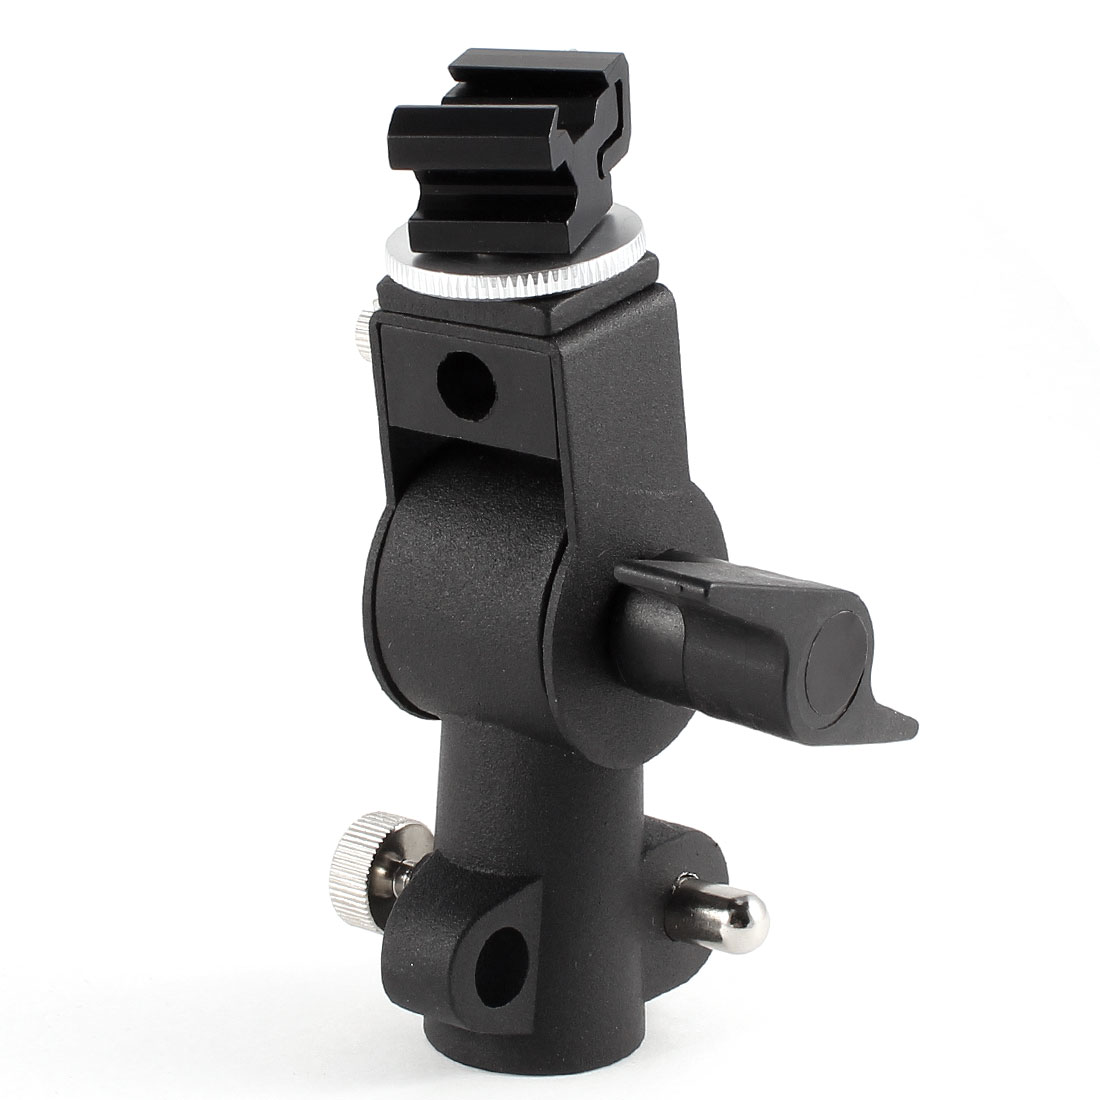 D-Type Swivel Flash Hot Shoe Bracket Tripod Umbrella Holder Light Stand Adapter